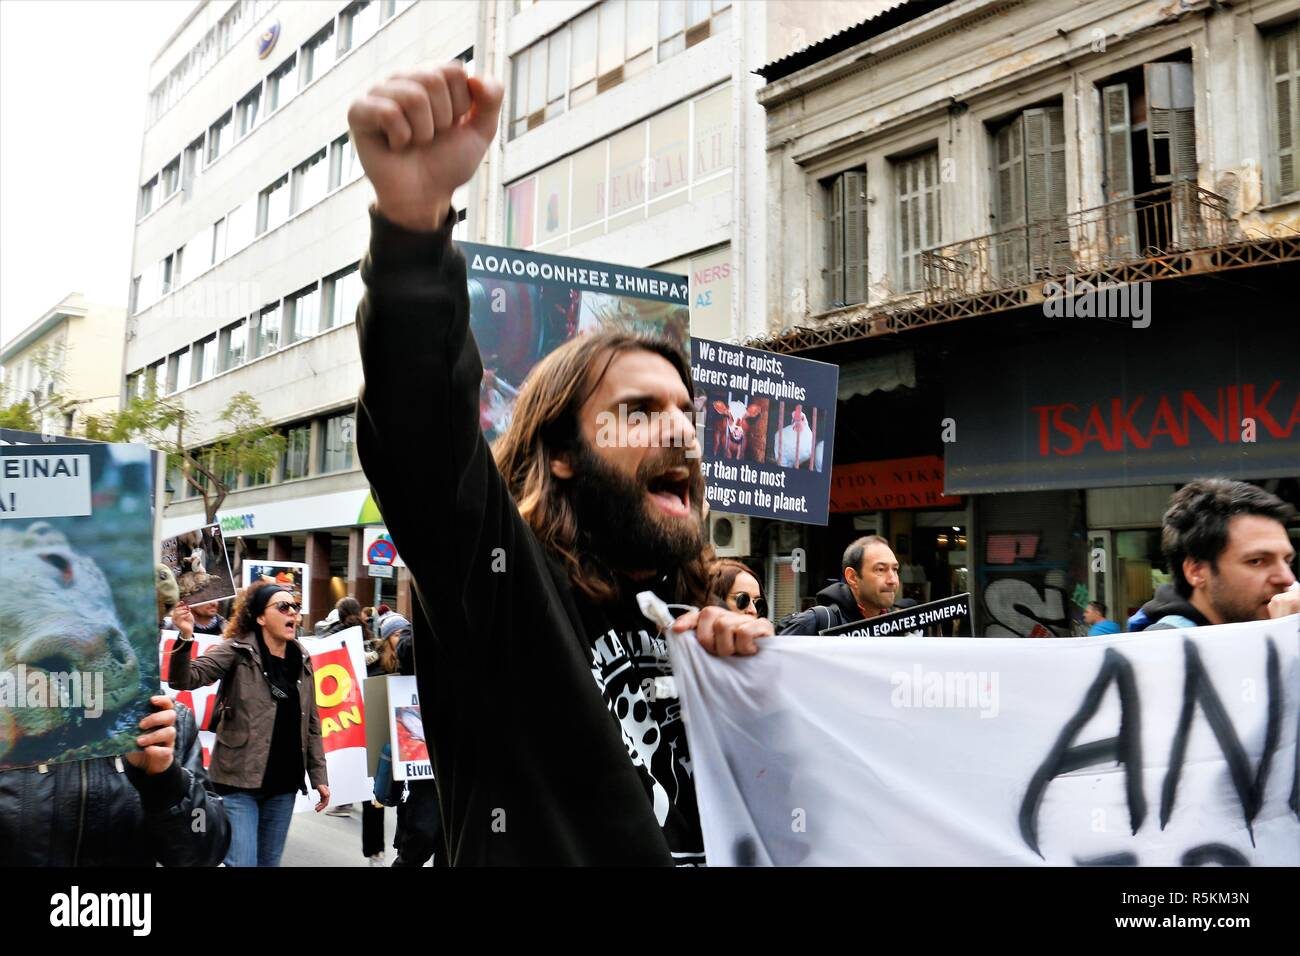 A protester seen chanting slogans during the protest. Animal right activists demonstrate in Athens against animals' abuse, violence, mistreatment towards animals and promoting a vegan way of life. - Stock Image